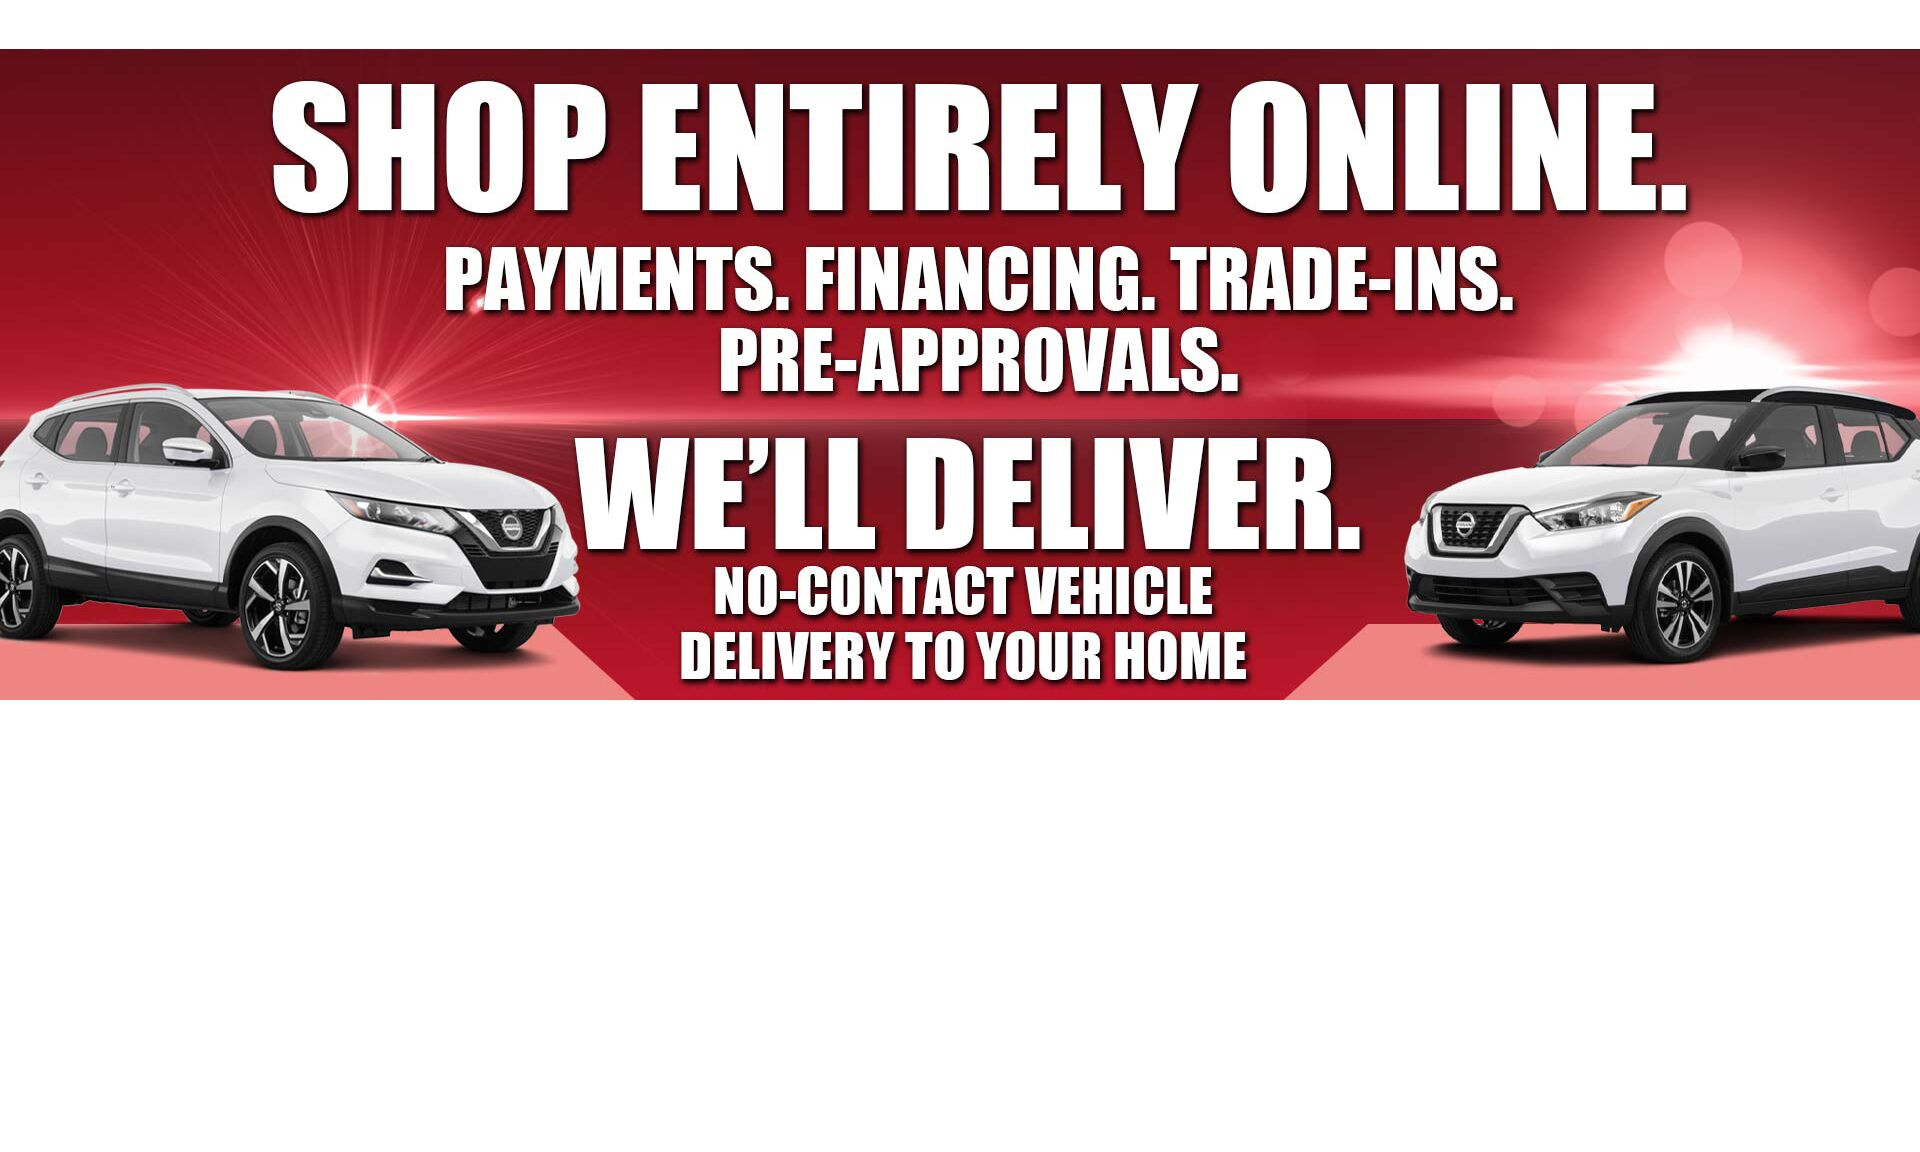 NIssan Shop on Online